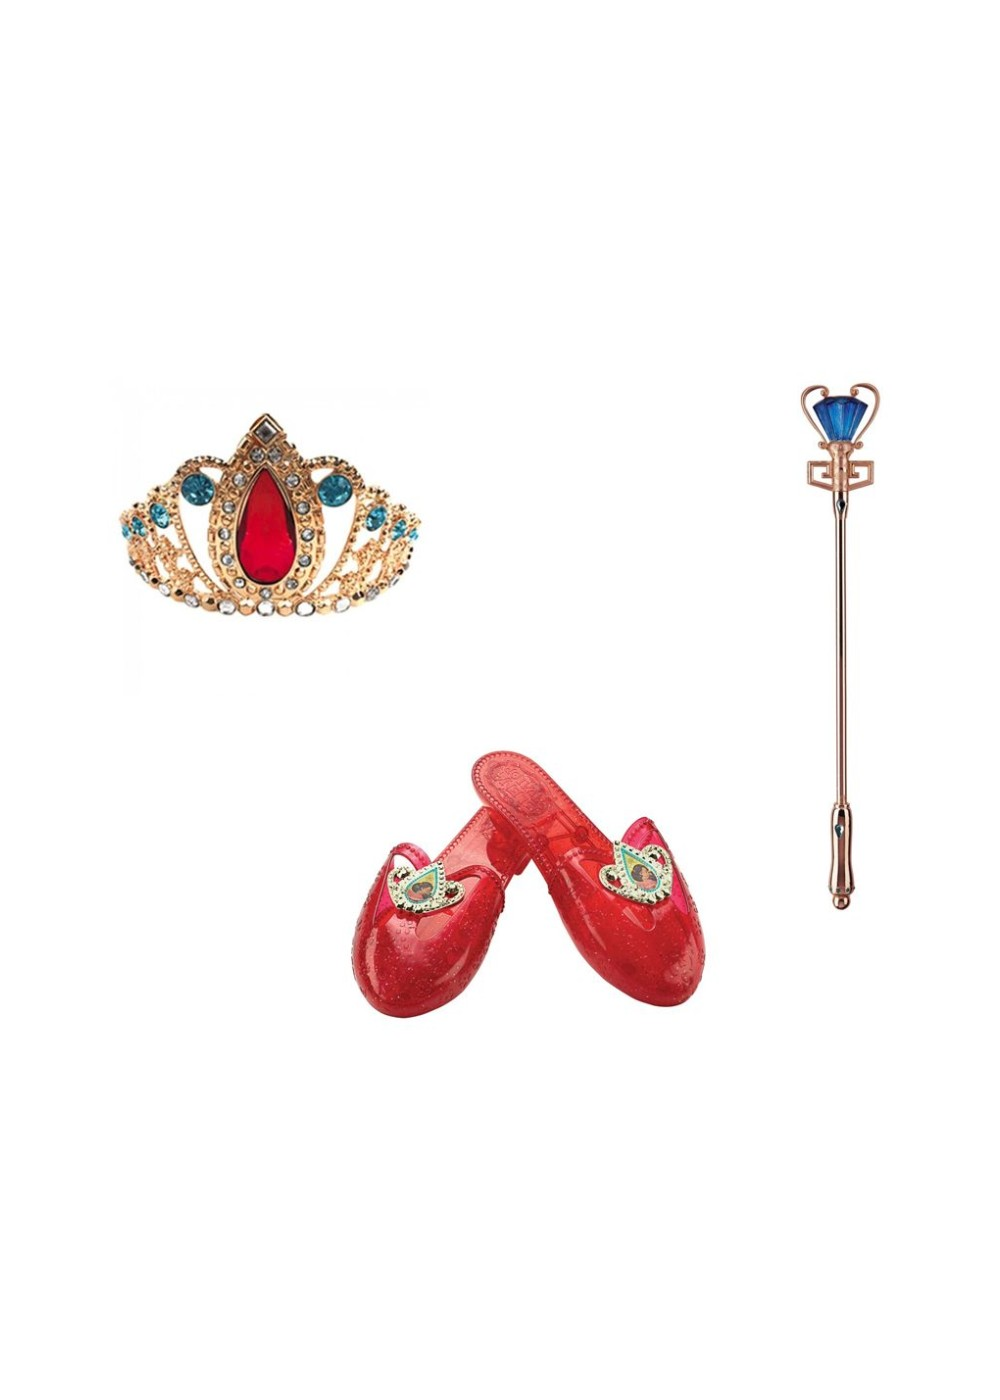 Girls Disney Princess Elena Costume Accessory Kit